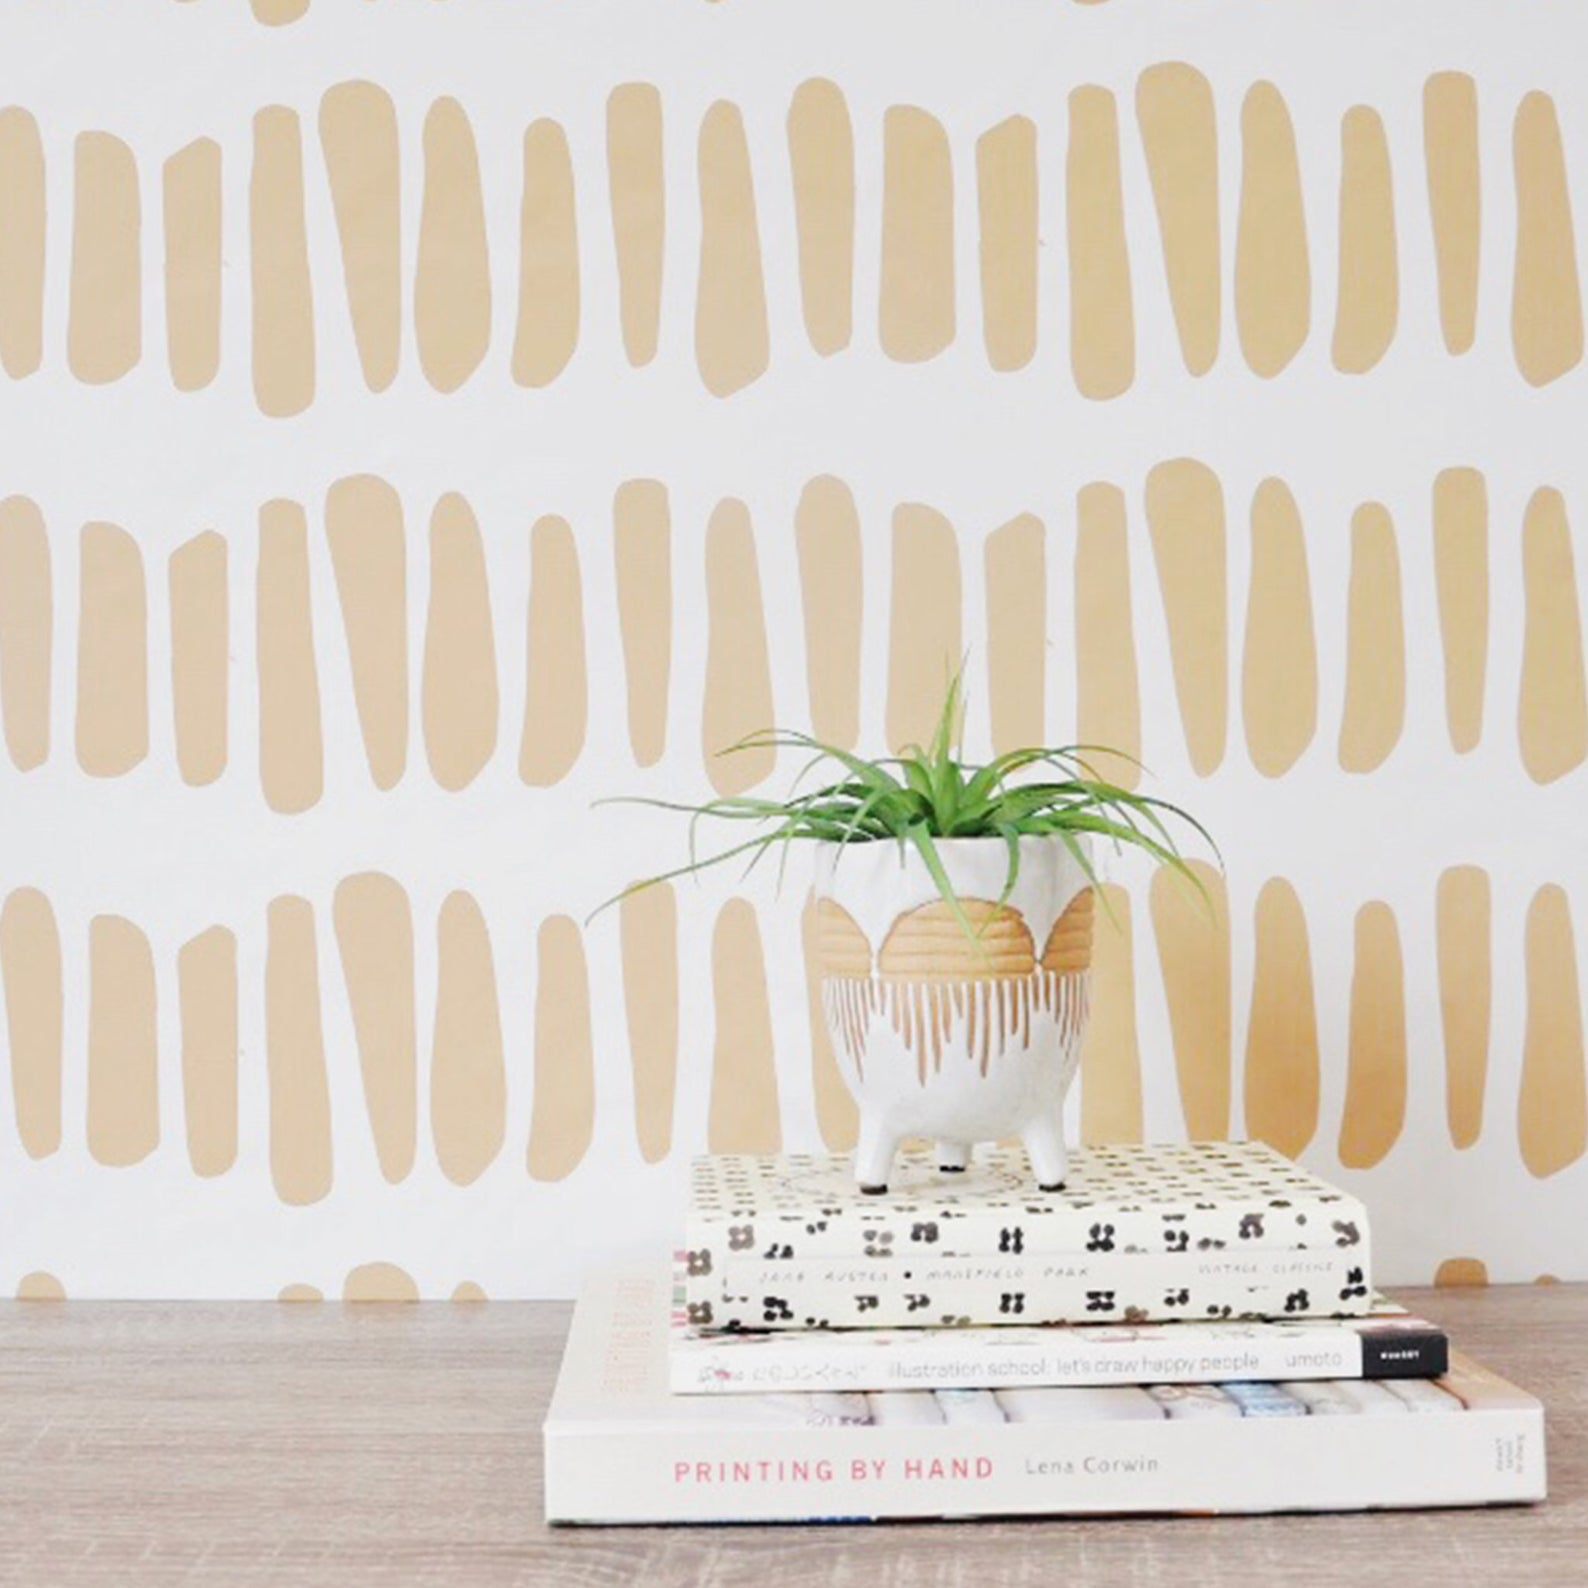 patterned wallpaper from Etsy